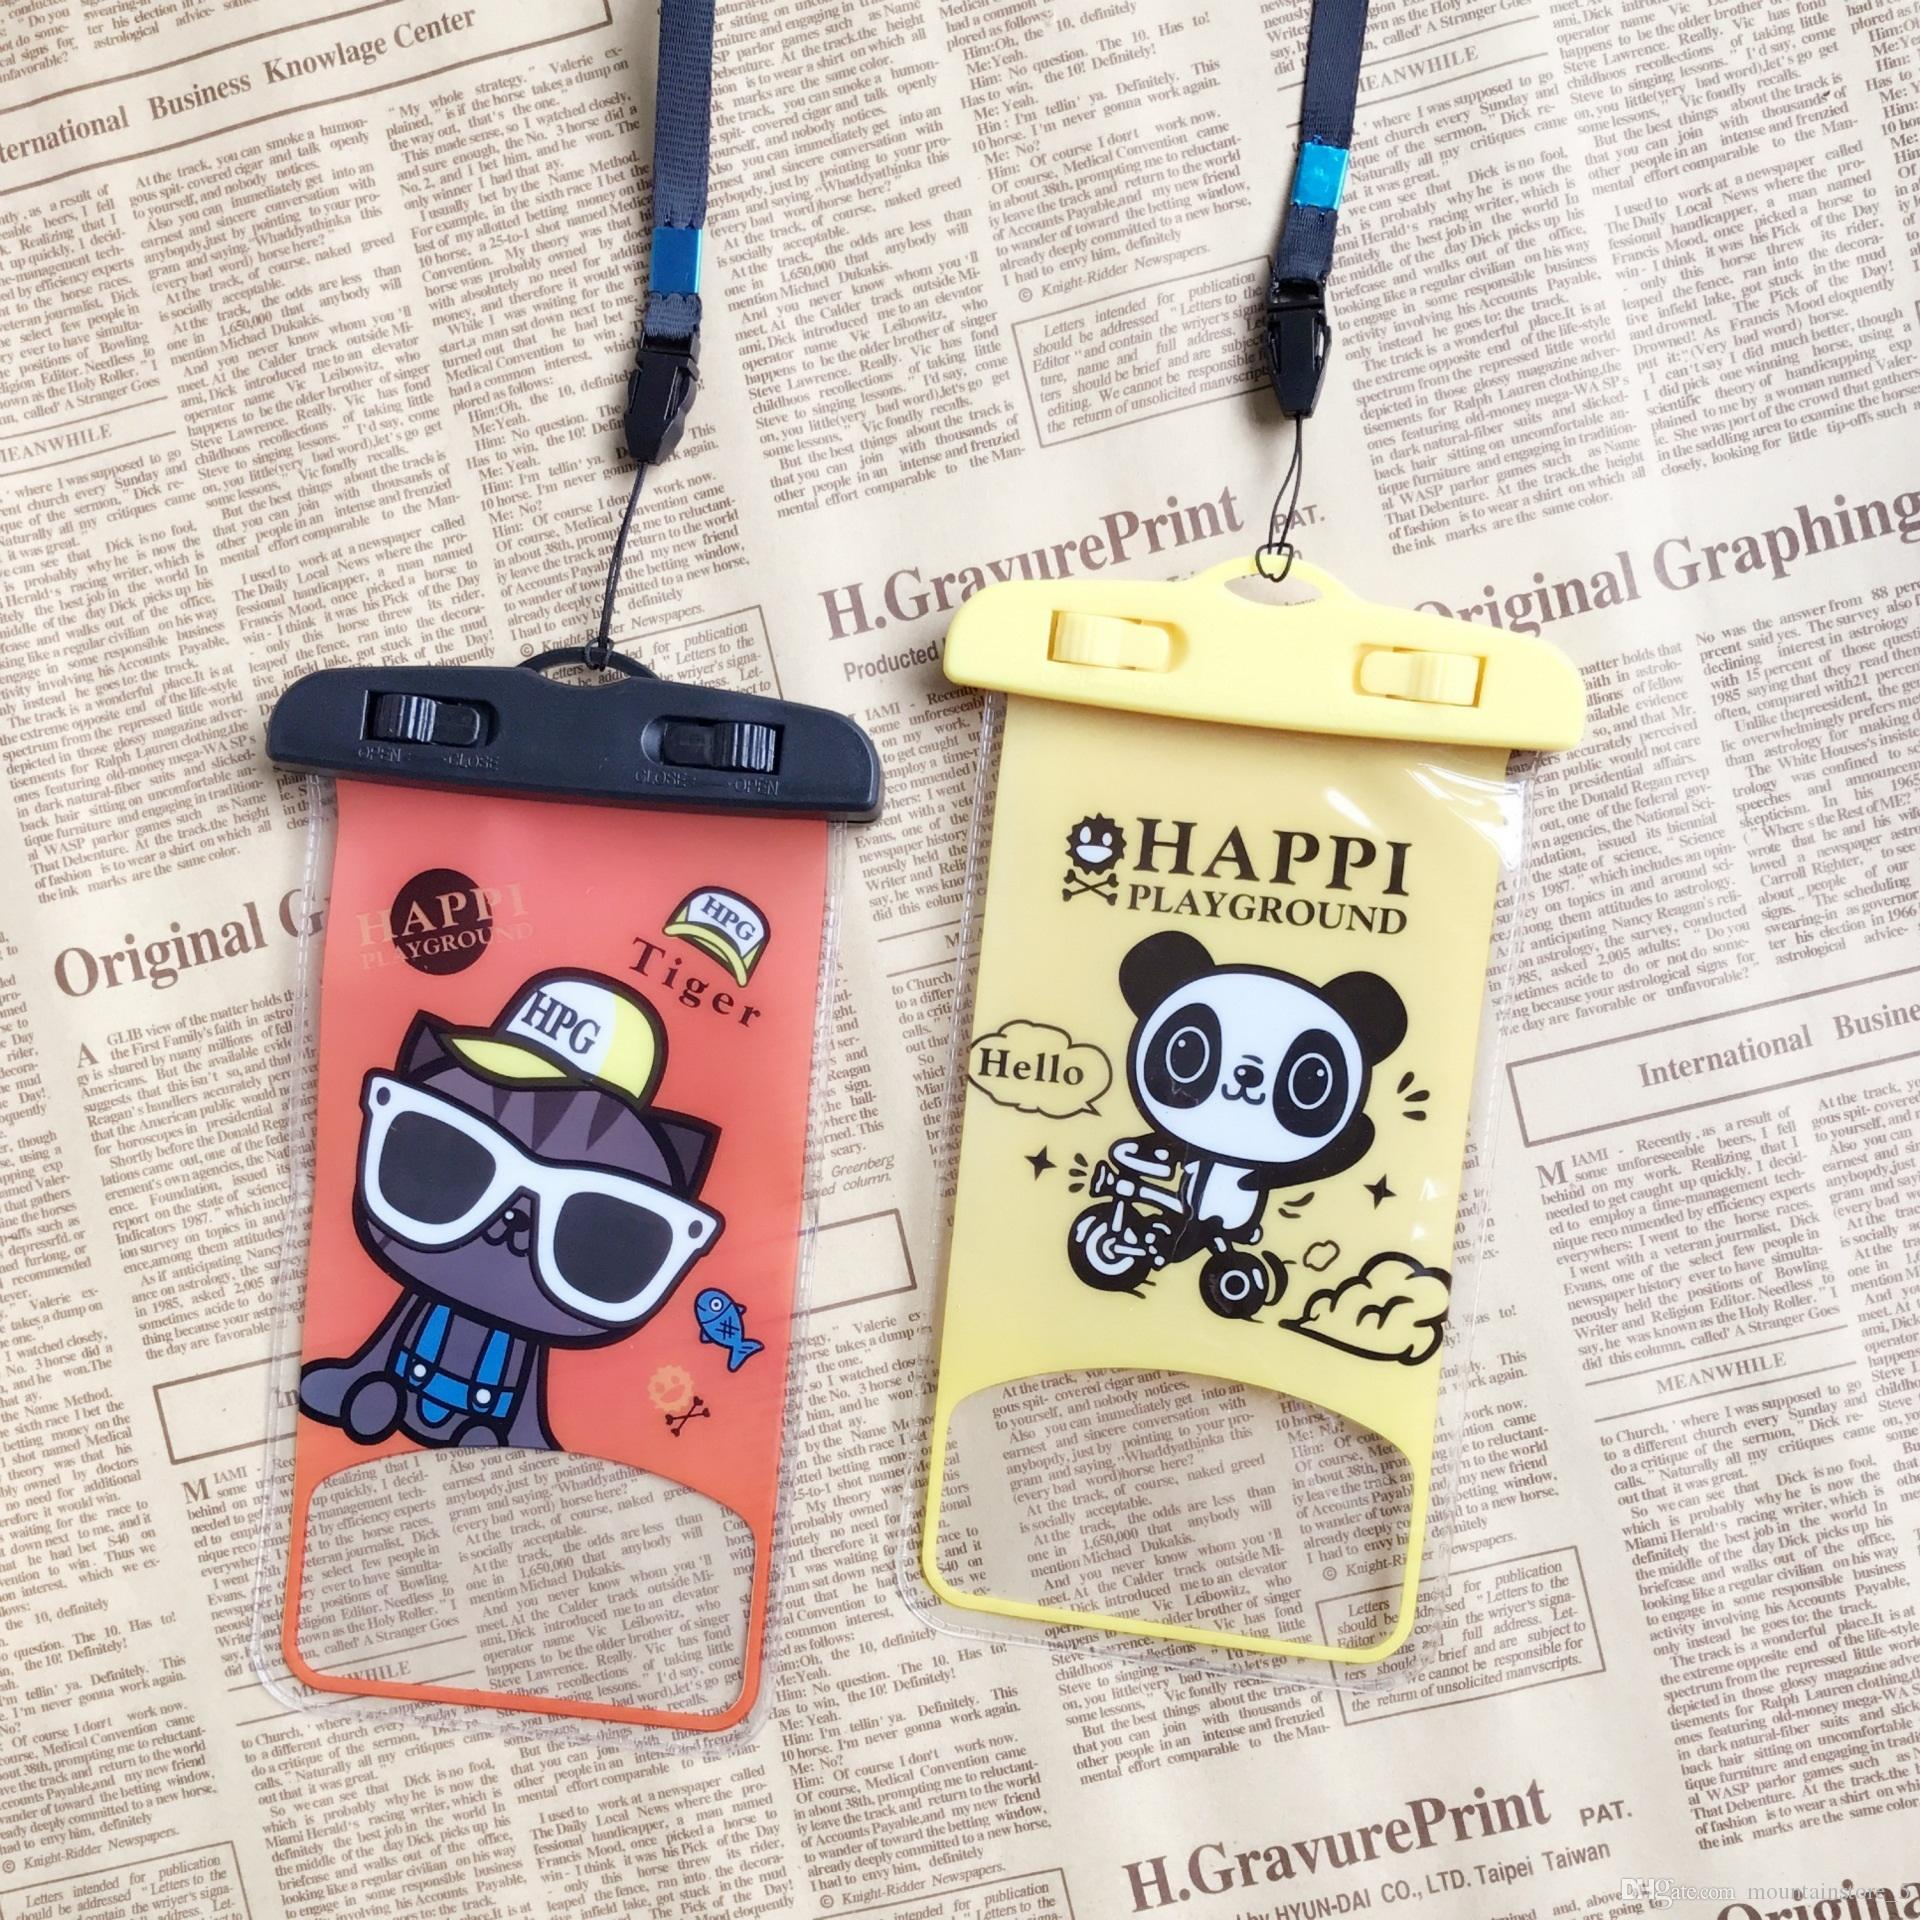 Cartoon Waterproof Mobile Phone Case For iPhone Xr 6 Plus Samsung Clear PVC Sealed Underwater Cell Smart Phone Dry Pouch Cover (Retail)